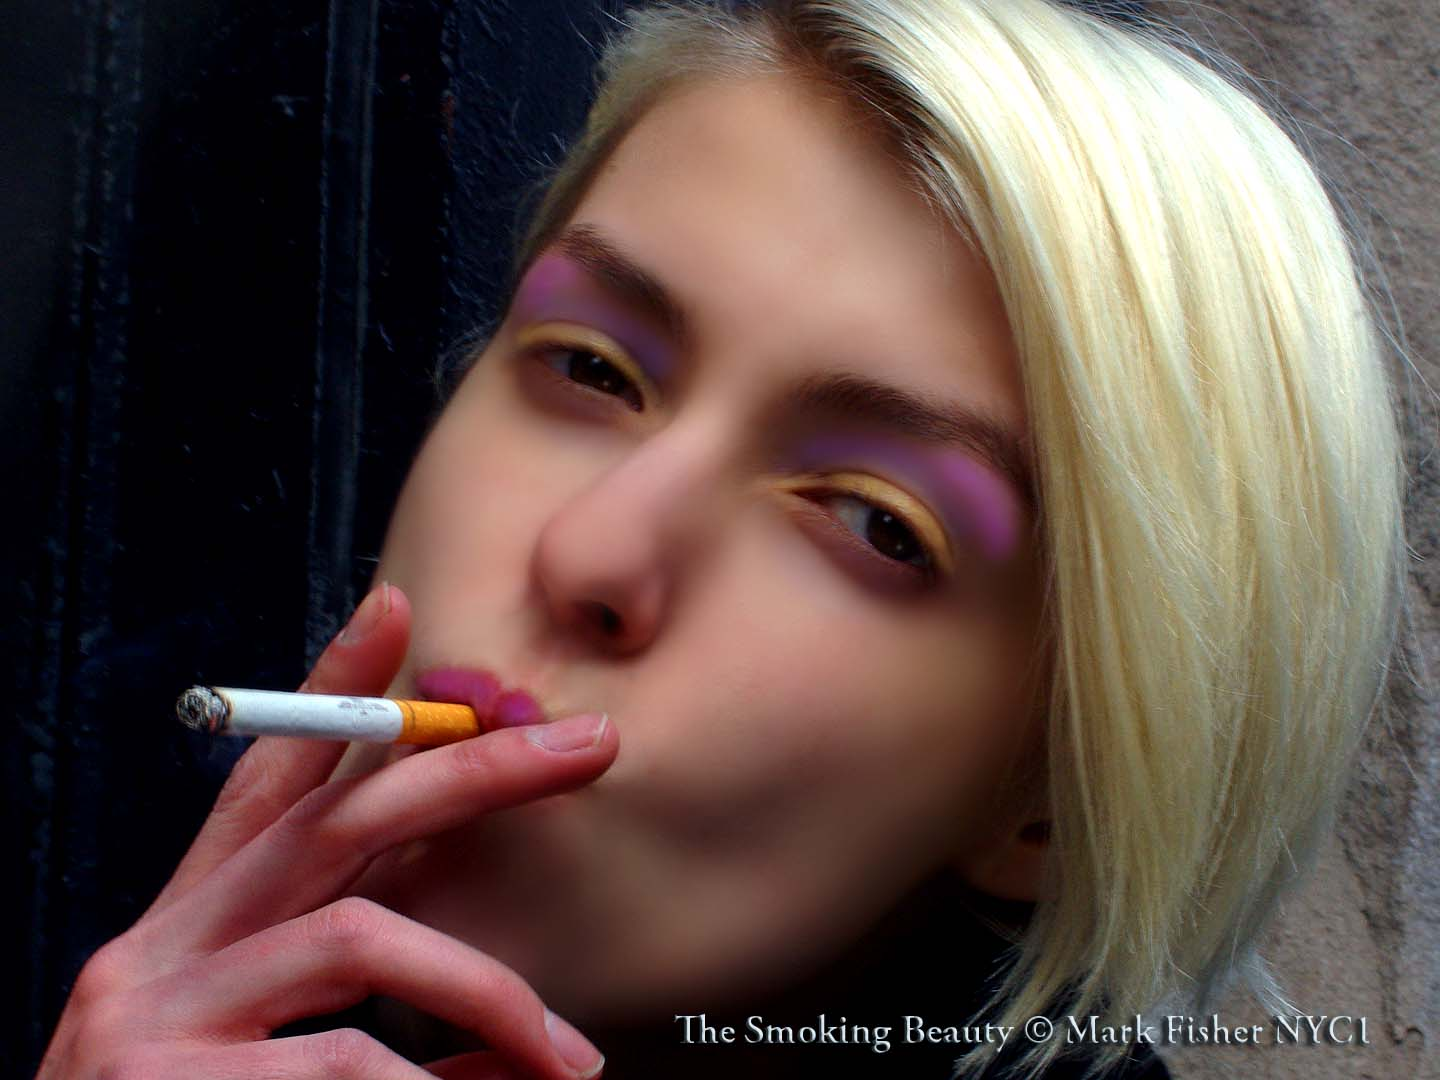 Photo of the in Belgium born Taurus, Stella Maxwell smoking in 2017 at age 26